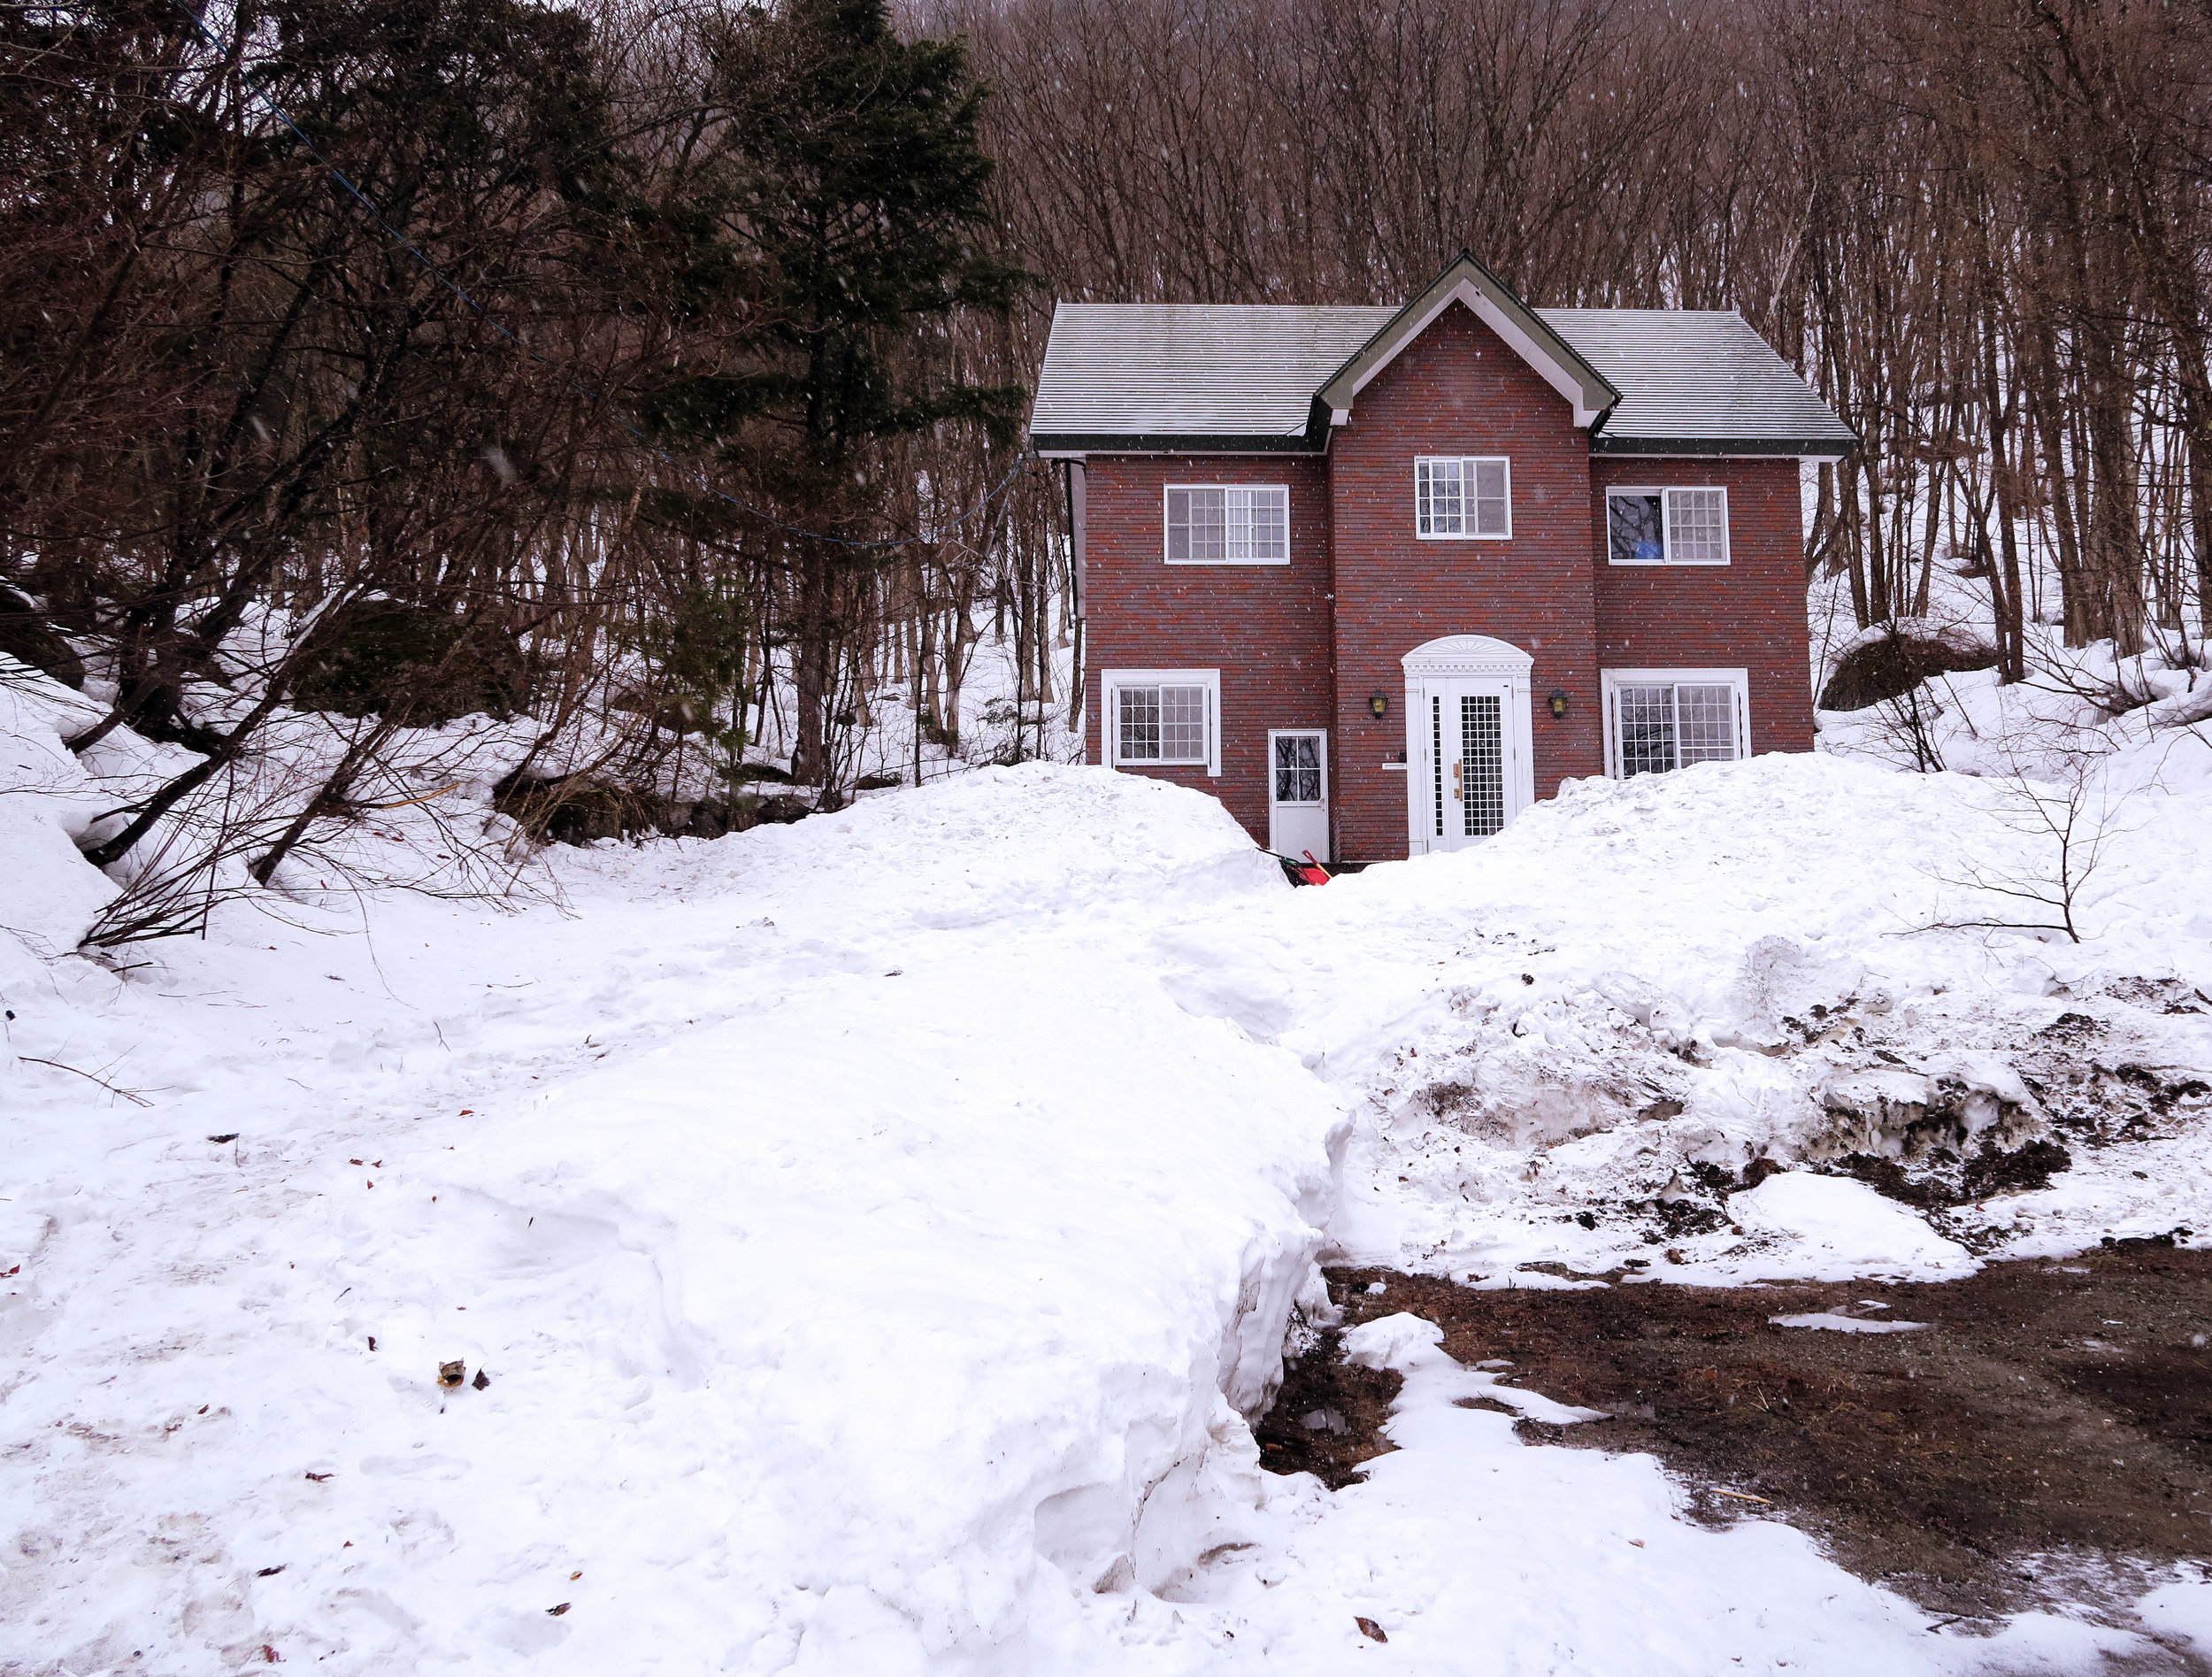 Where to stay this snow season in Hakuba, Japan. - A backpackers experience at The Bohemians Shelter.